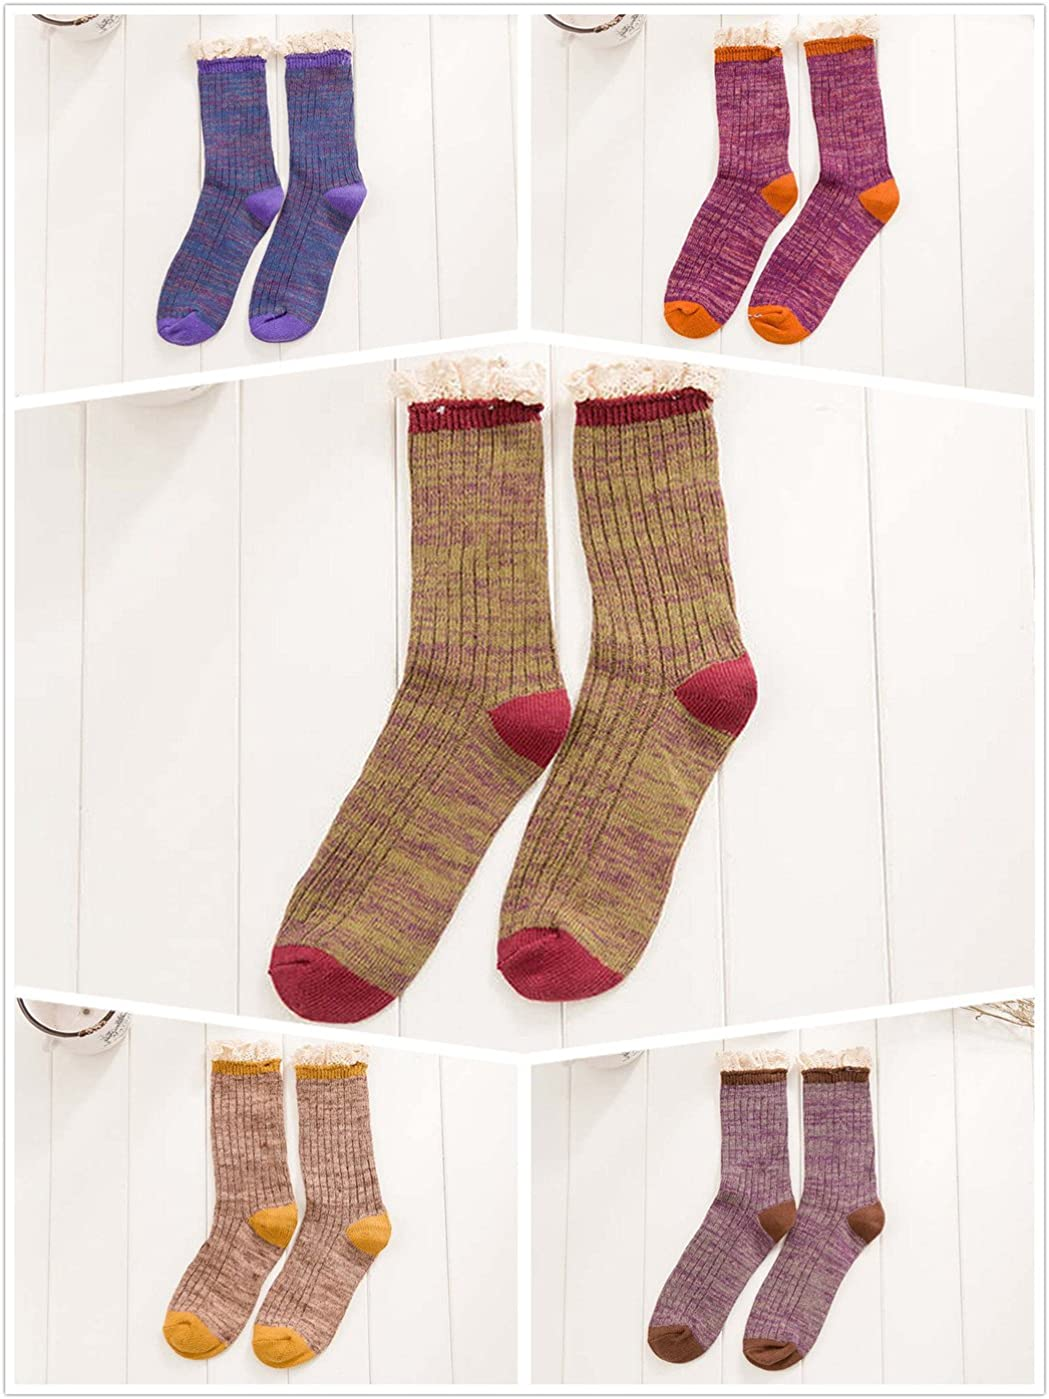 Santwo Color Block Warm Wool Blend Knited Lace Trim Hold-up Boot Crew Sock Winter 5 Pairs